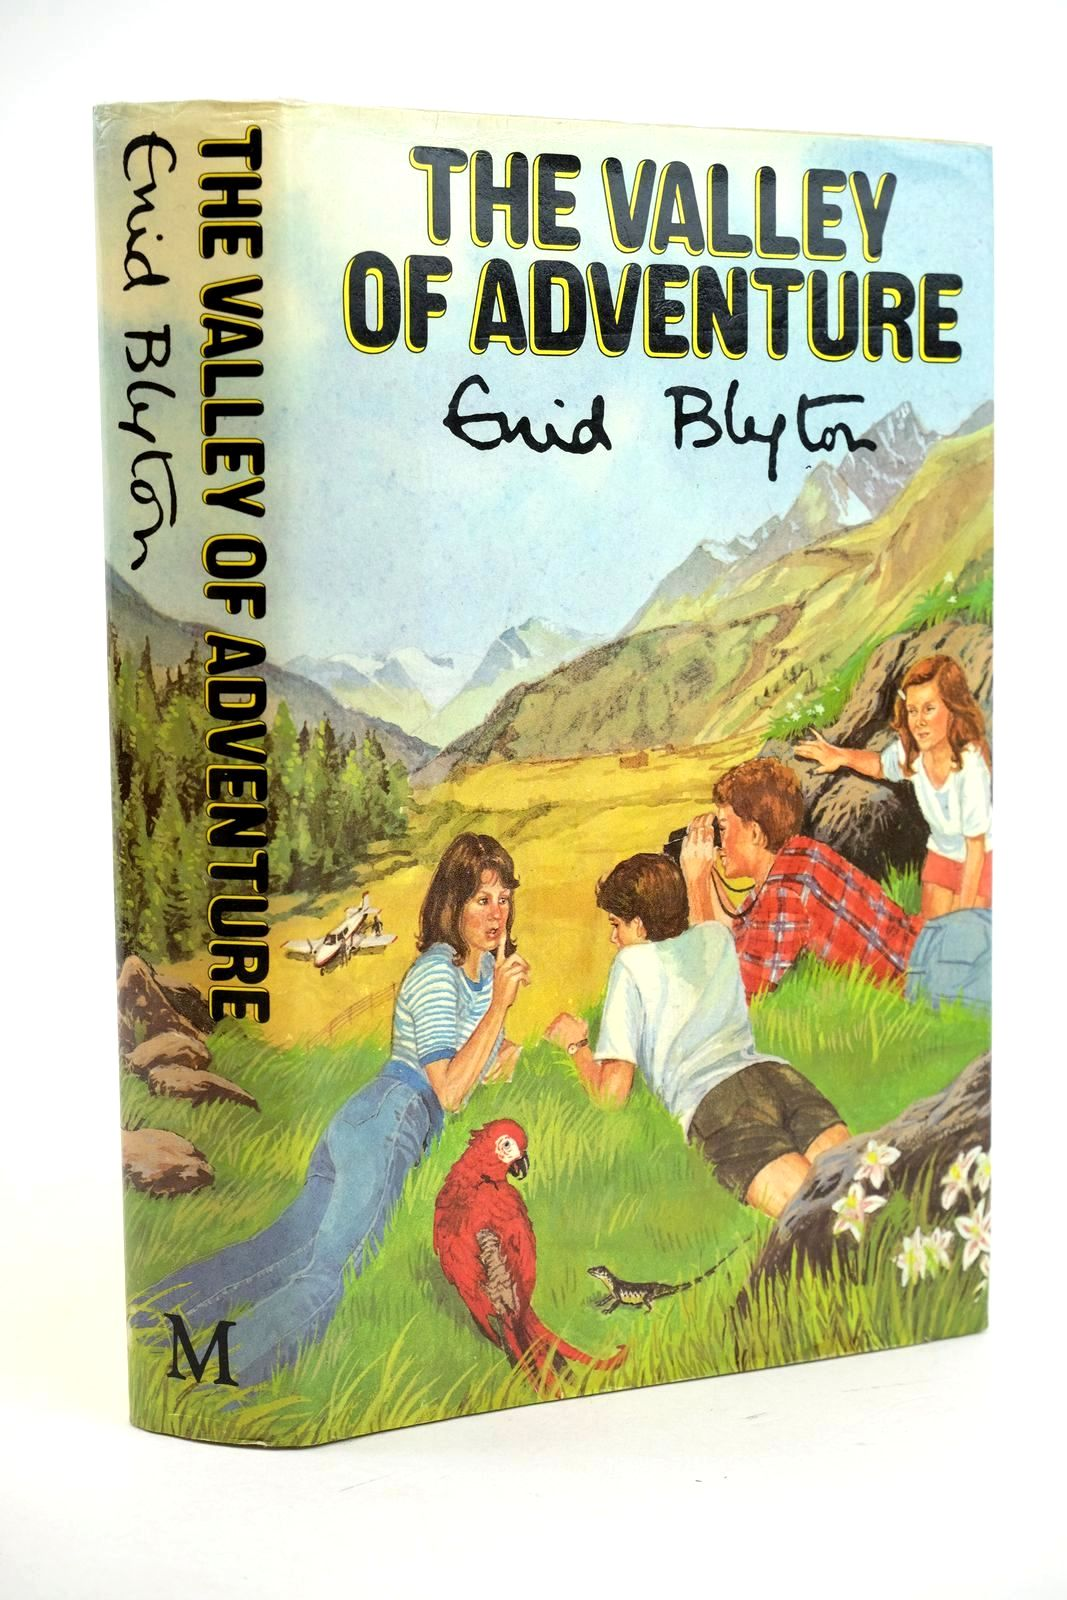 Photo of THE VALLEY OF ADVENTURE written by Blyton, Enid illustrated by Tresilian, Stuart published by Macmillan & Co. Ltd. (STOCK CODE: 1319117)  for sale by Stella & Rose's Books